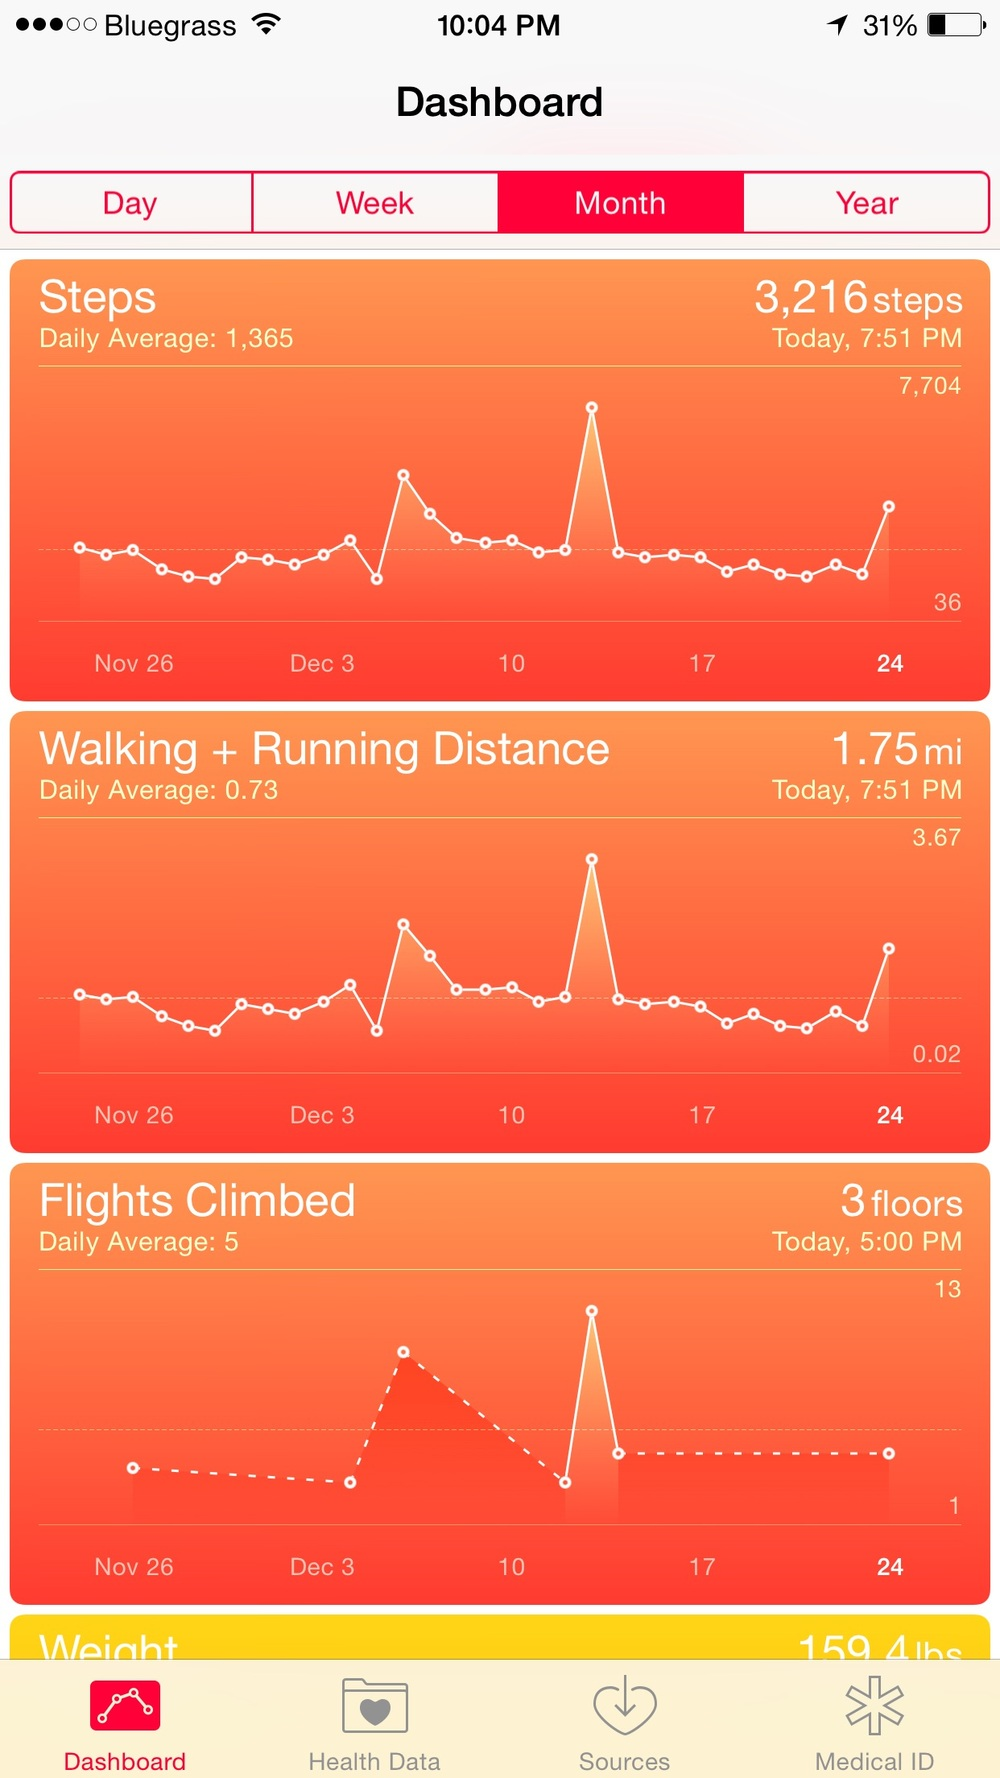 A leisurely hike, but the incline/decline is challenging after being so sick this month